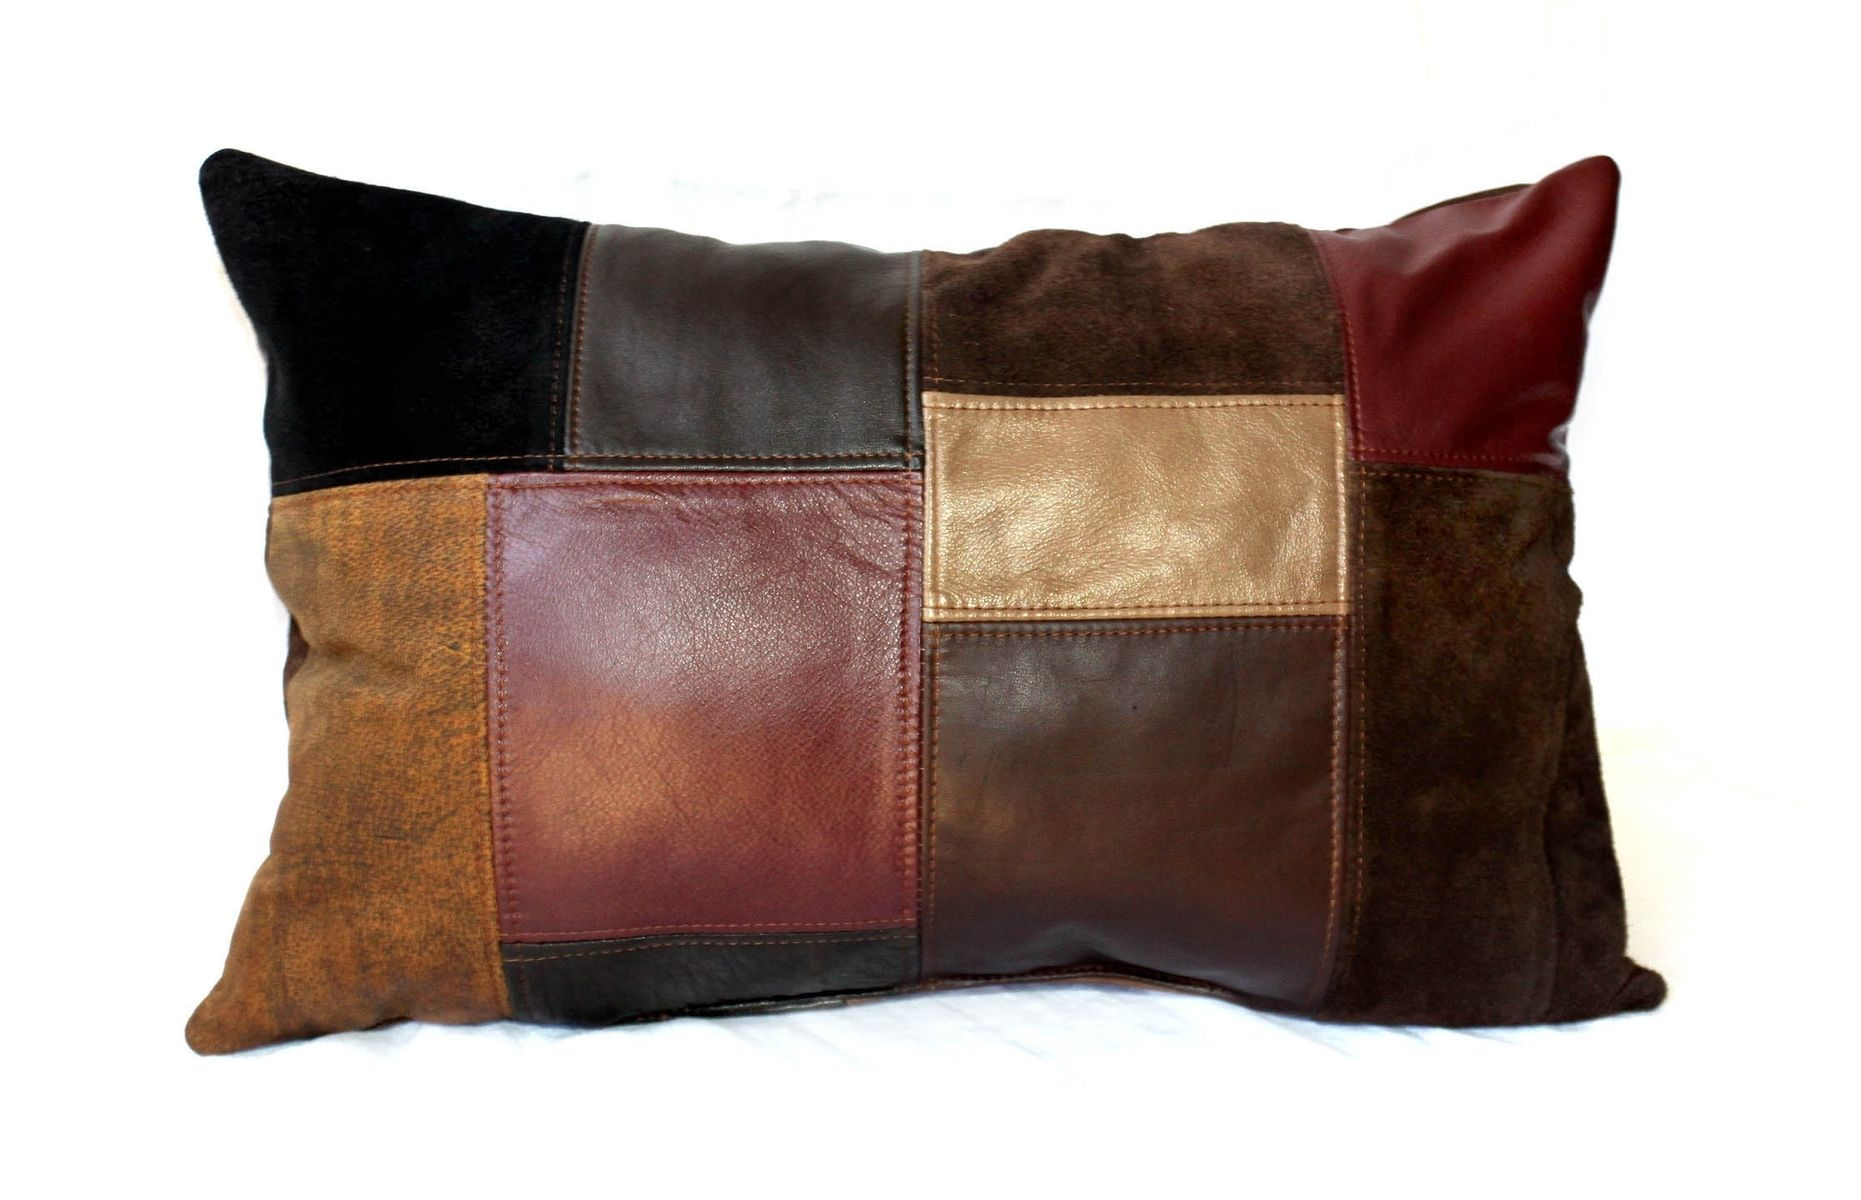 Austin Bedroom Furniture Hand Crafted Upcycled Leather Patchwork Pillows Small